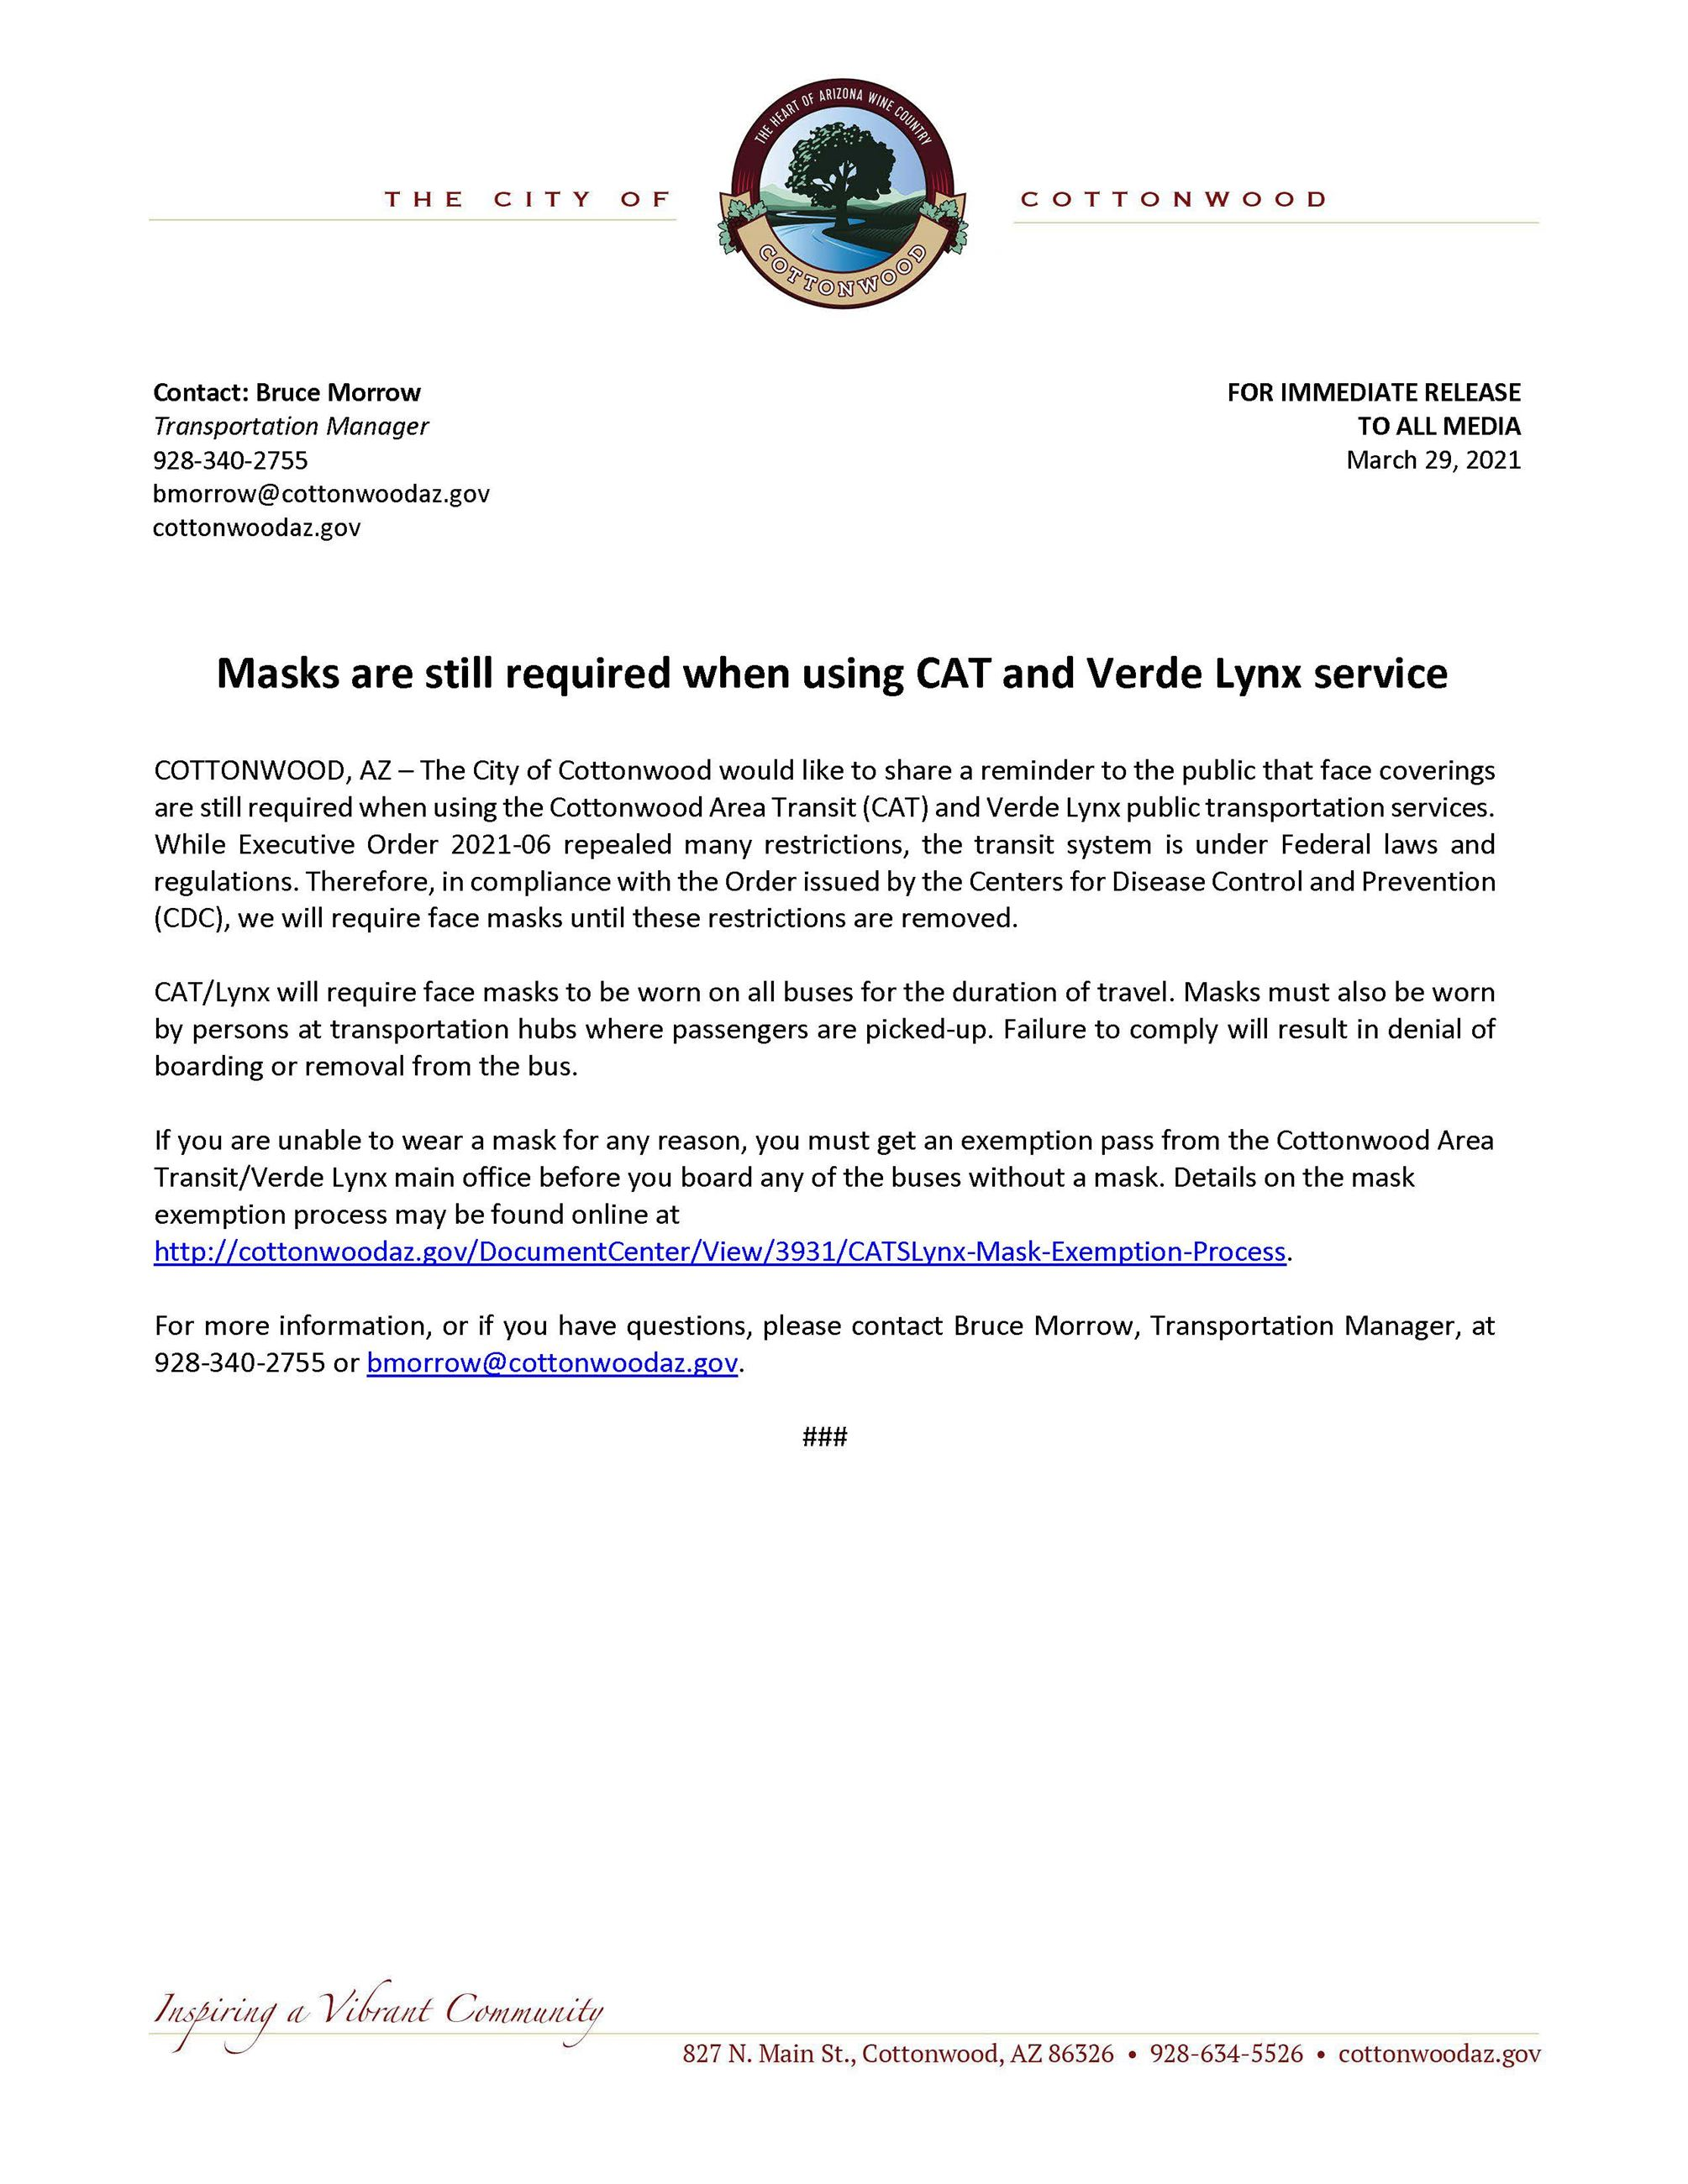 PRESS RELEASE - Masks Still Required on CAT-Lynx